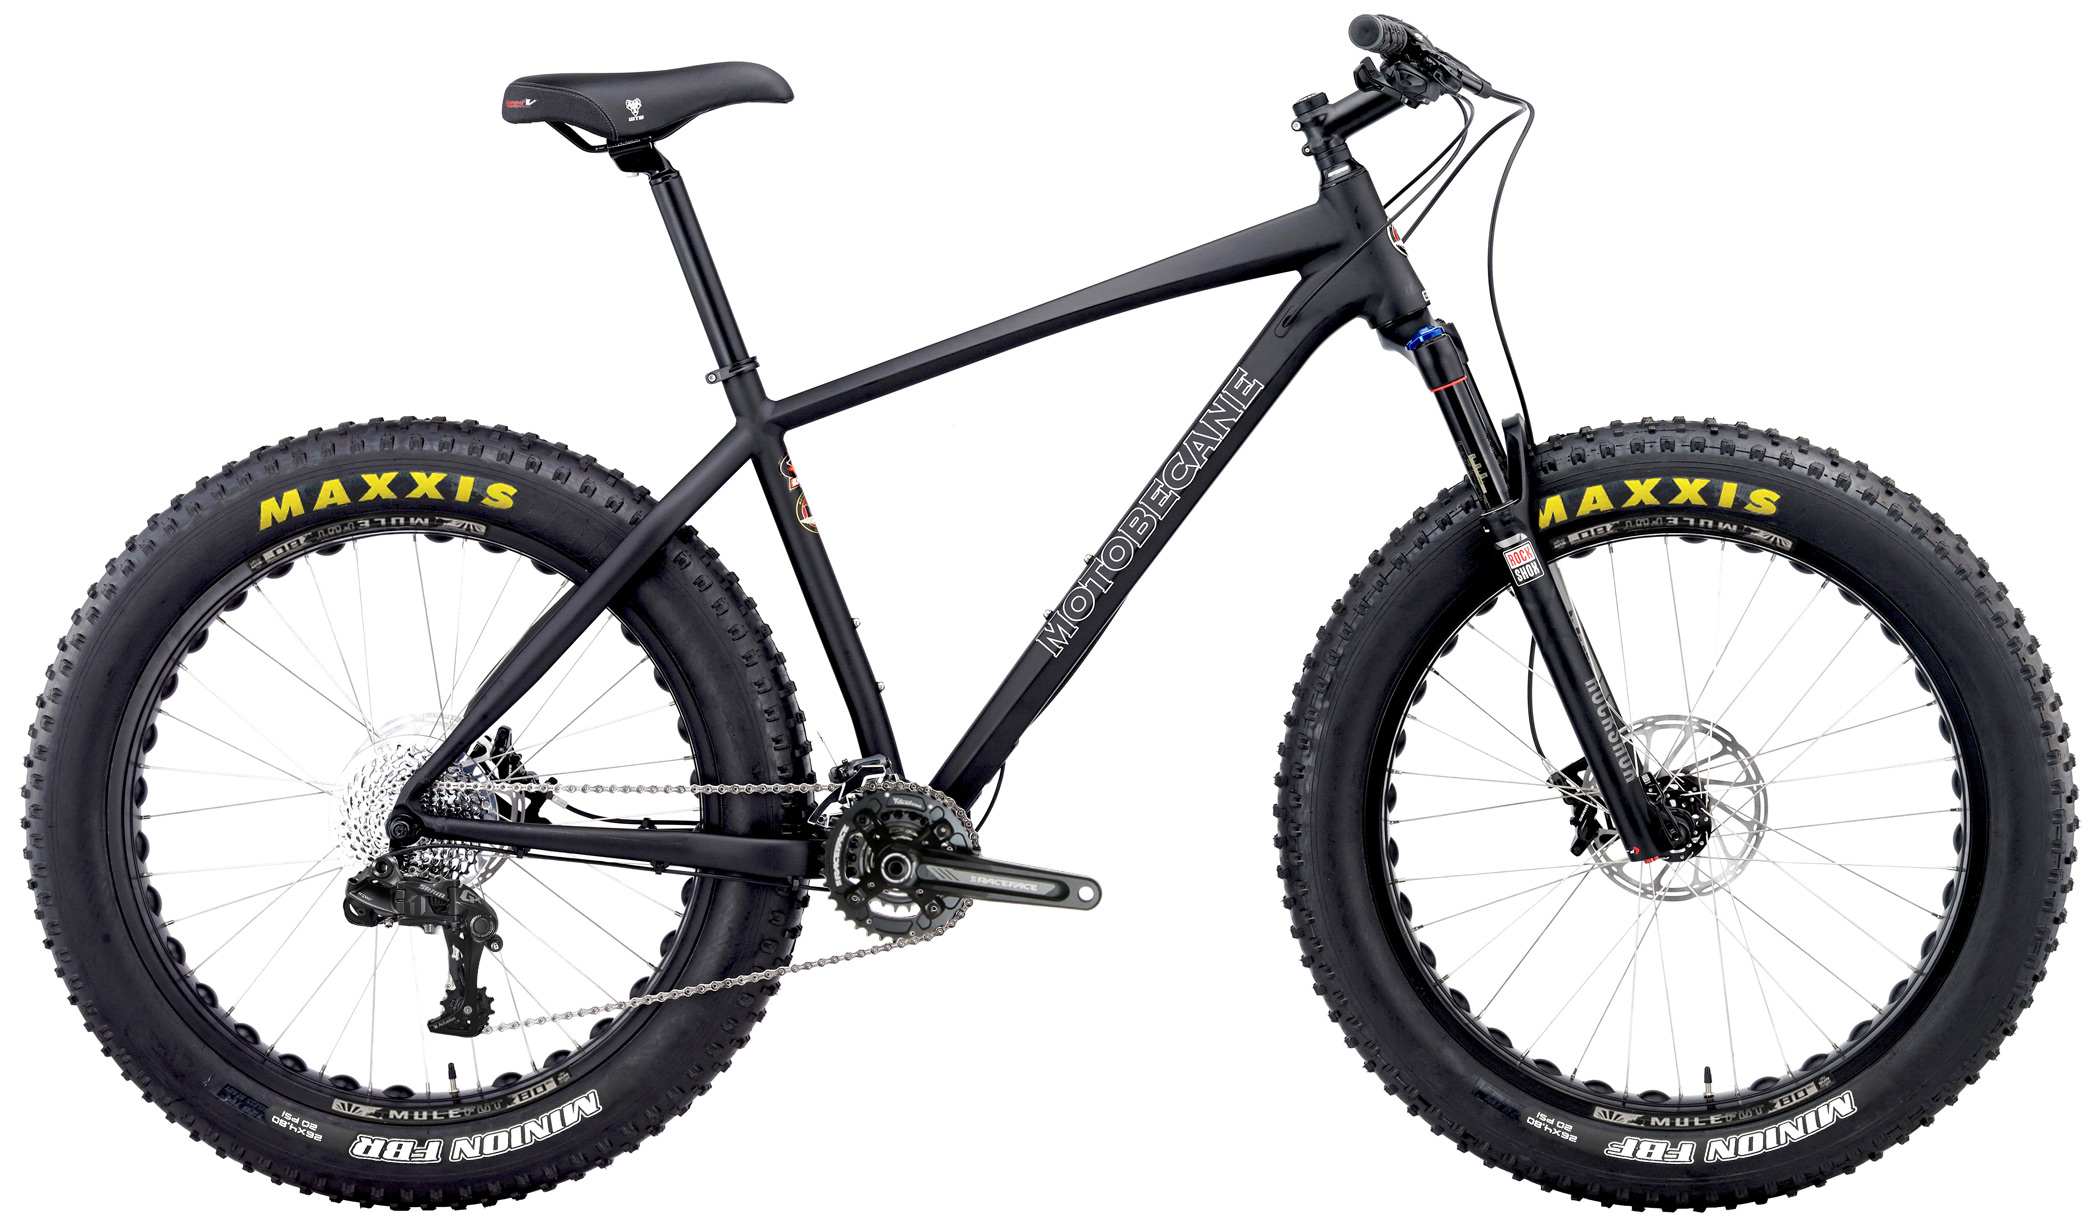 Bikes Motobecane Night Train Ti SL Titanium Frame Carbon Fork Fat Bike Image